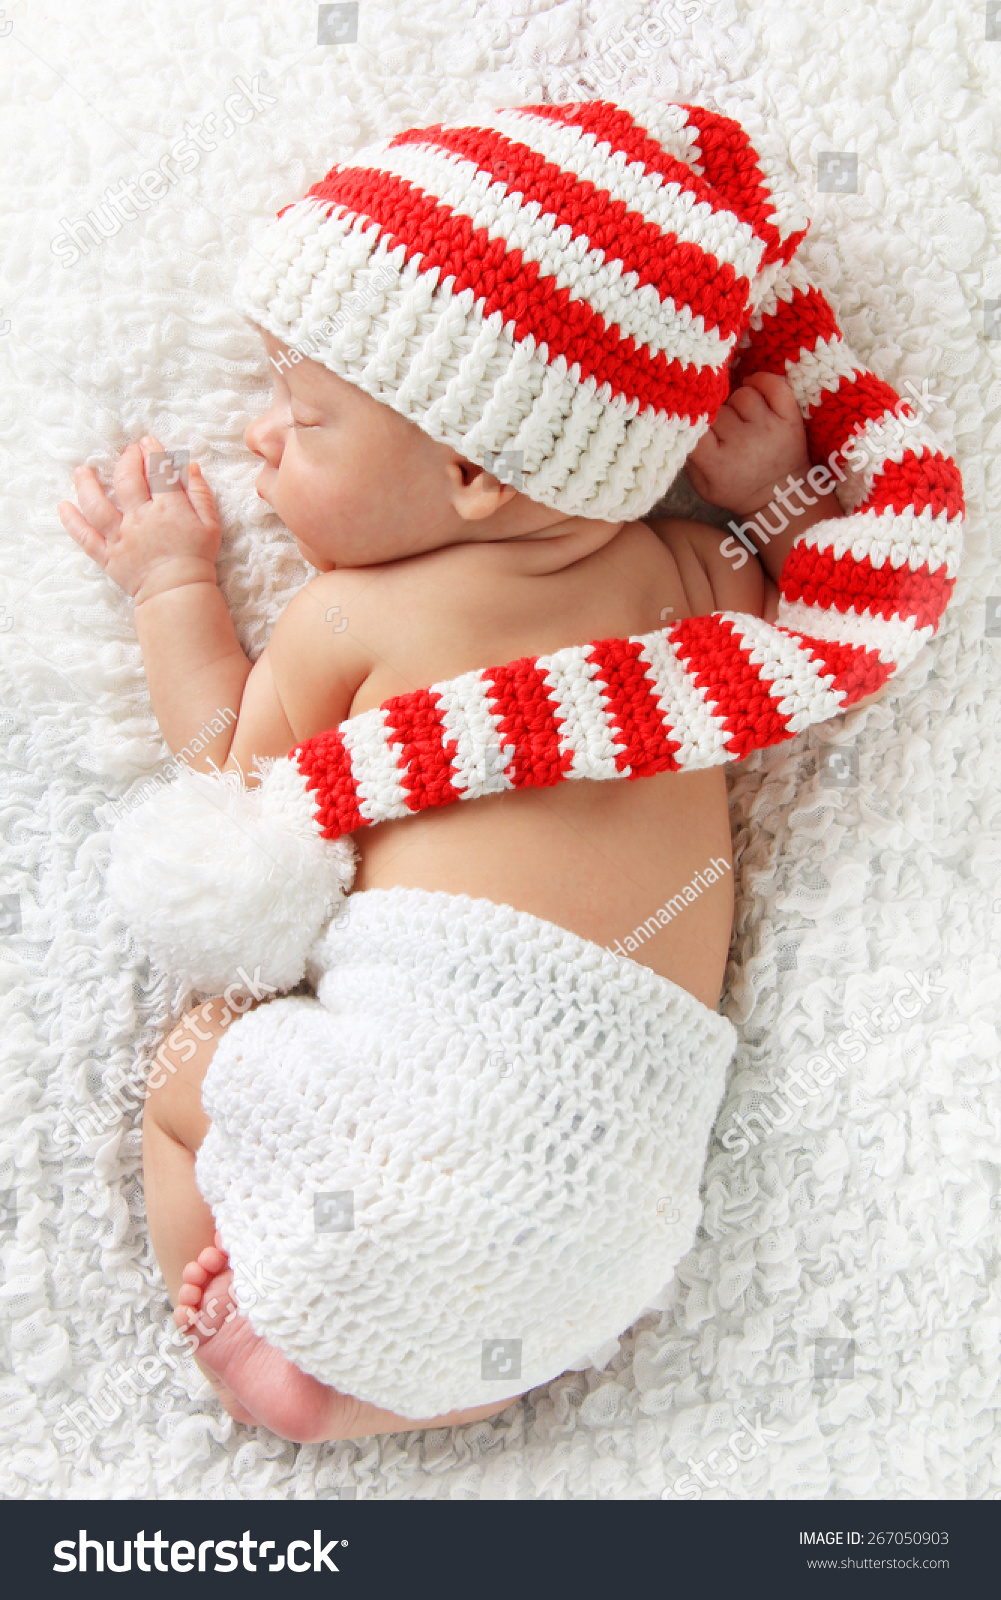 Knitting Pattern Newborn Elf Hat : Newborn Baby Wearing A Knitted Christmas Elf Hat. Stock ...